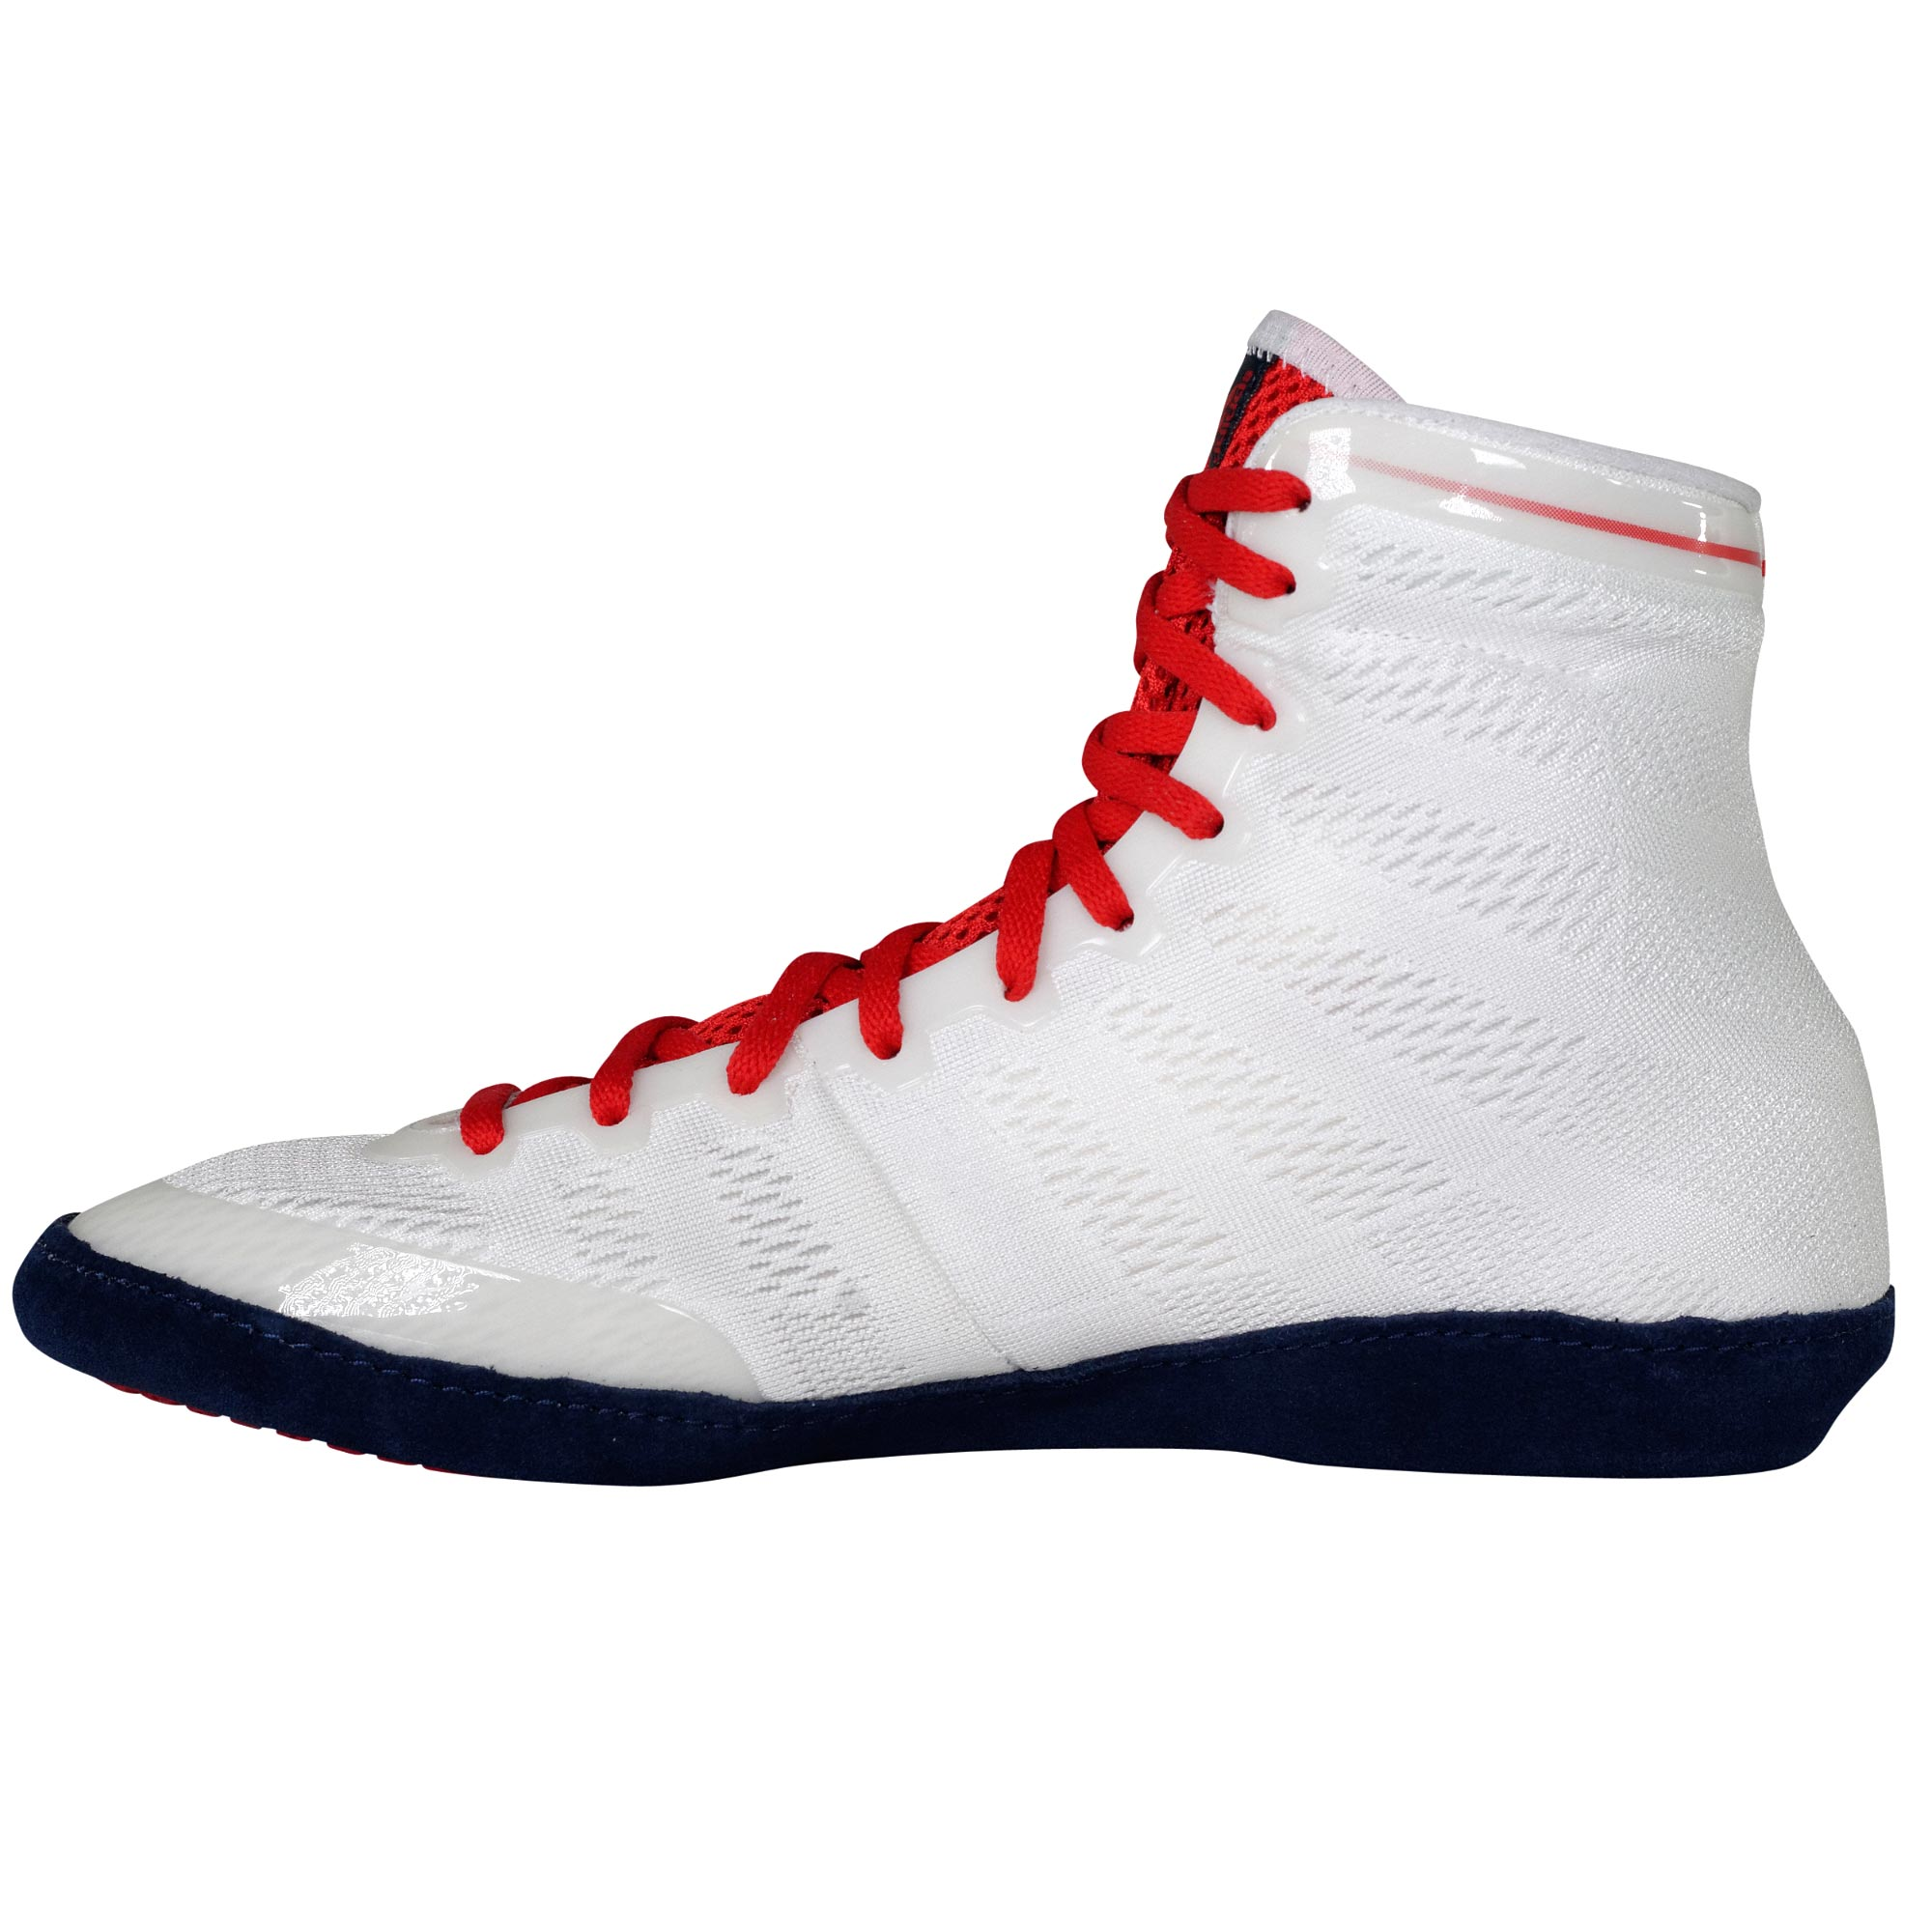 separation shoes 0f712 fa329 Adidas AdiZero Varner White Red Navy ...